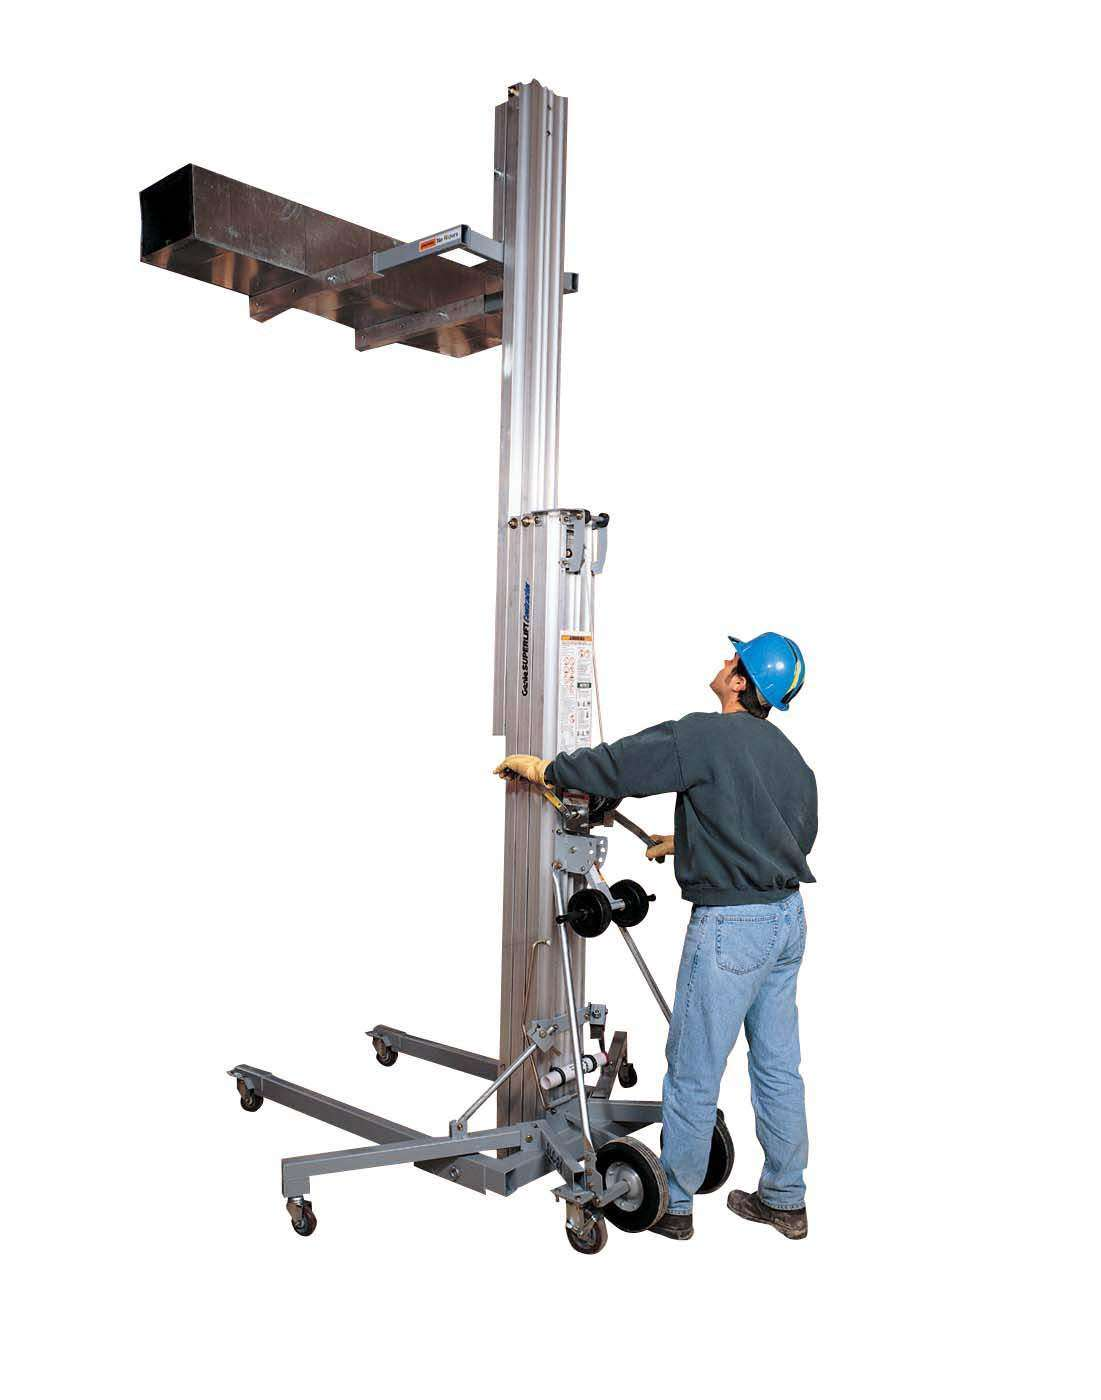 Hydraulic Material Lift : Portable material lift for construction and industrial